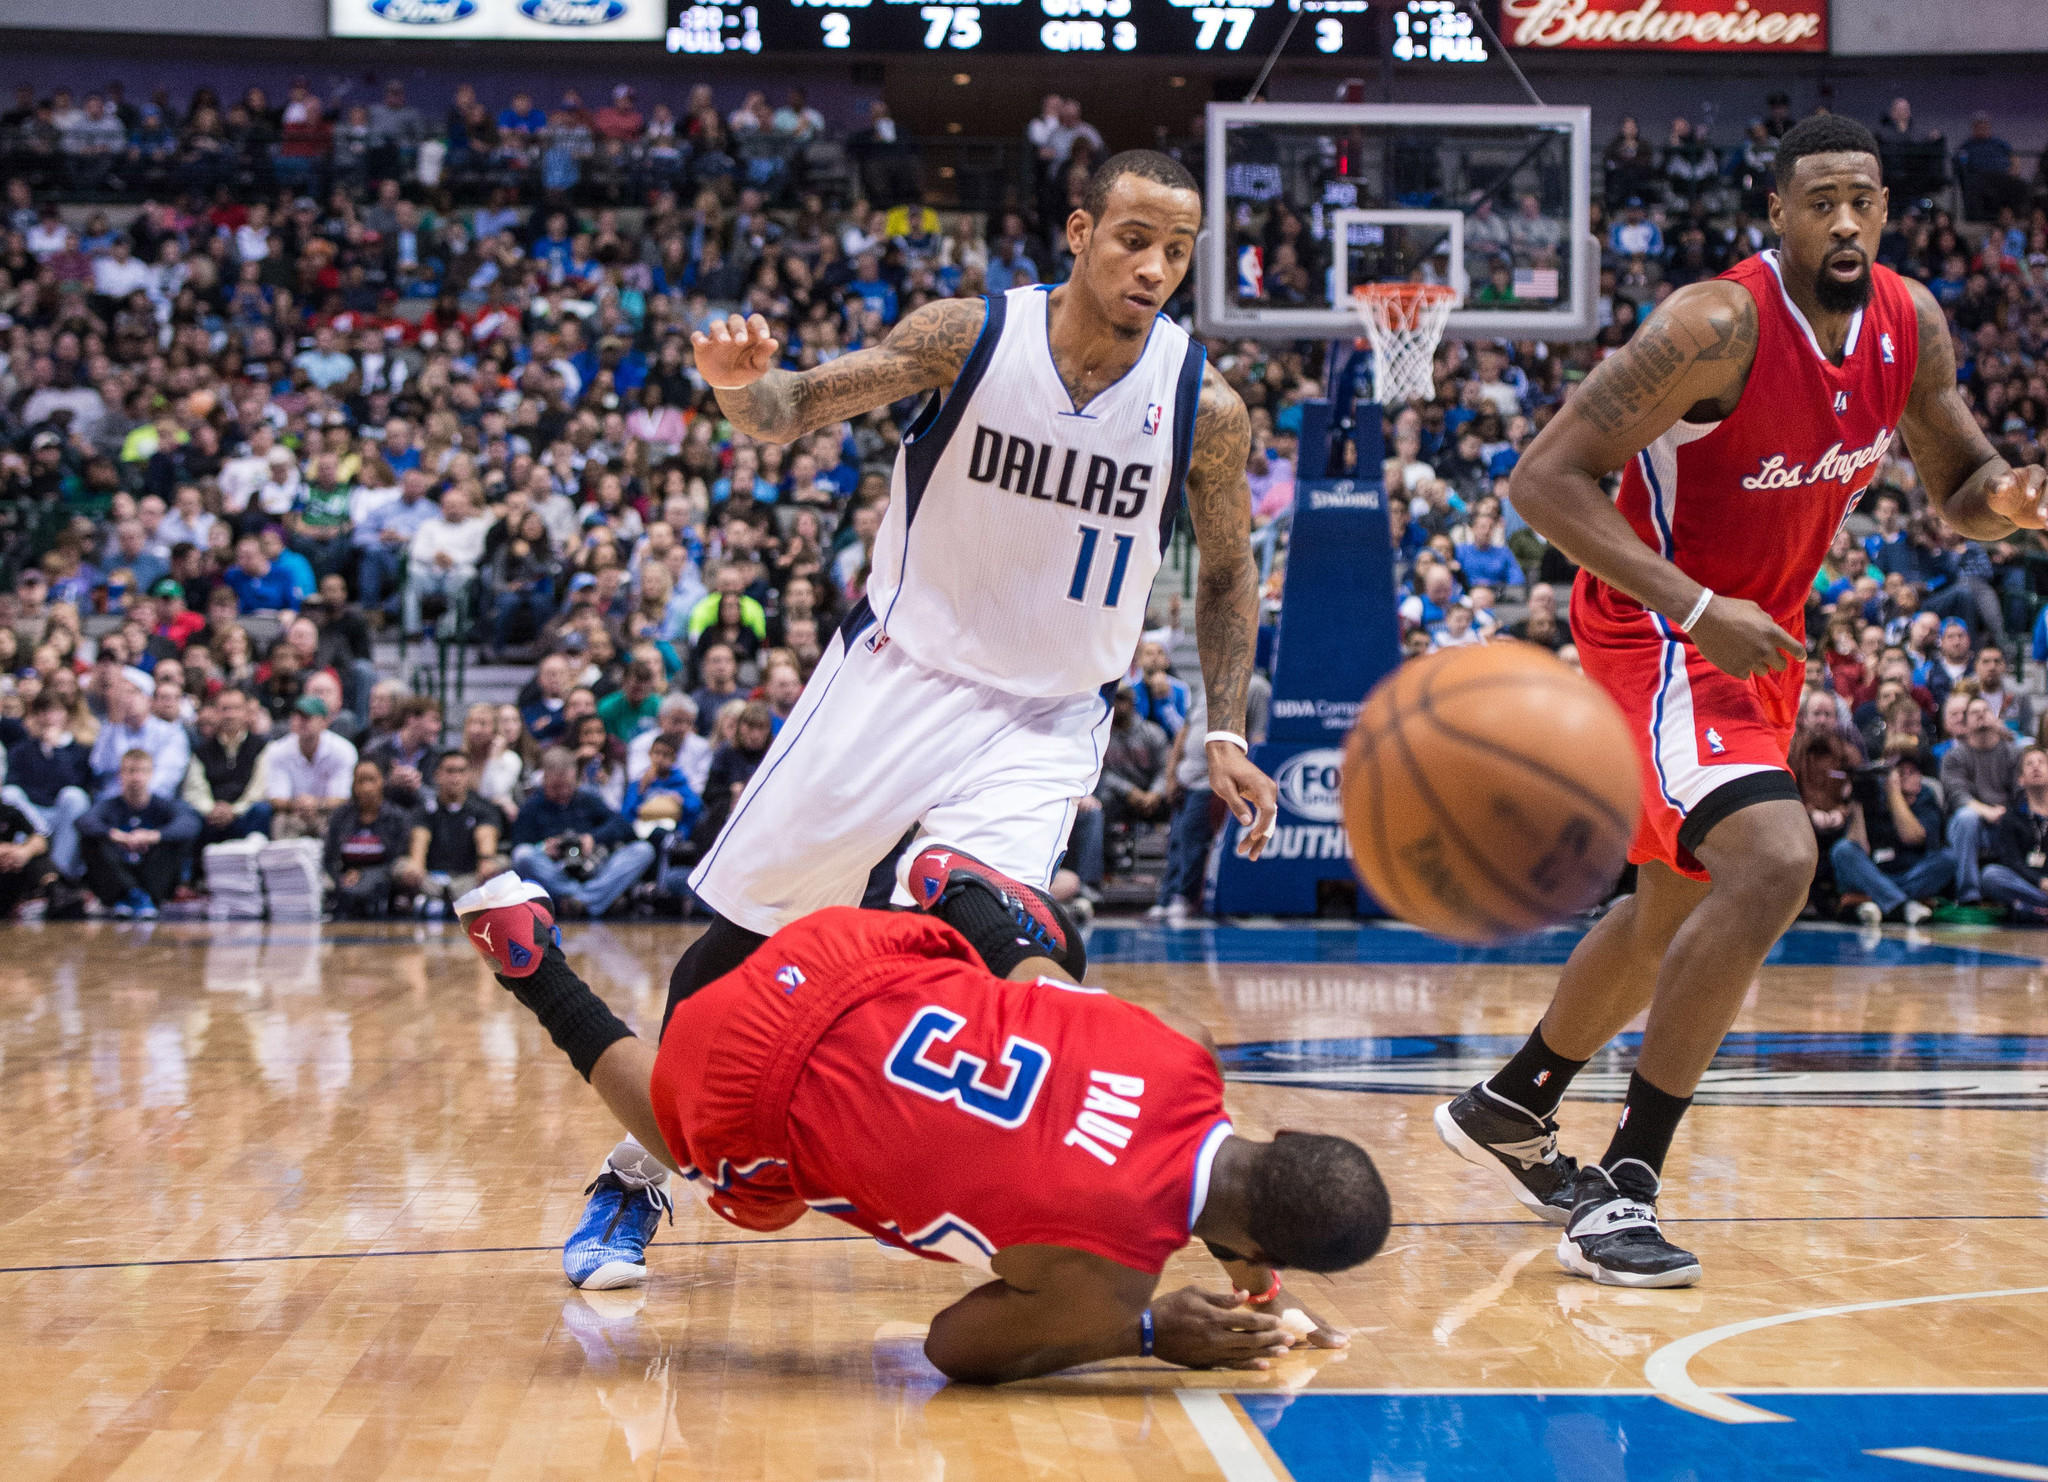 Clippers point guard Chris Paul falls to the court while dribbling past Mavericks shooting guard Monta Ellis during the second half.